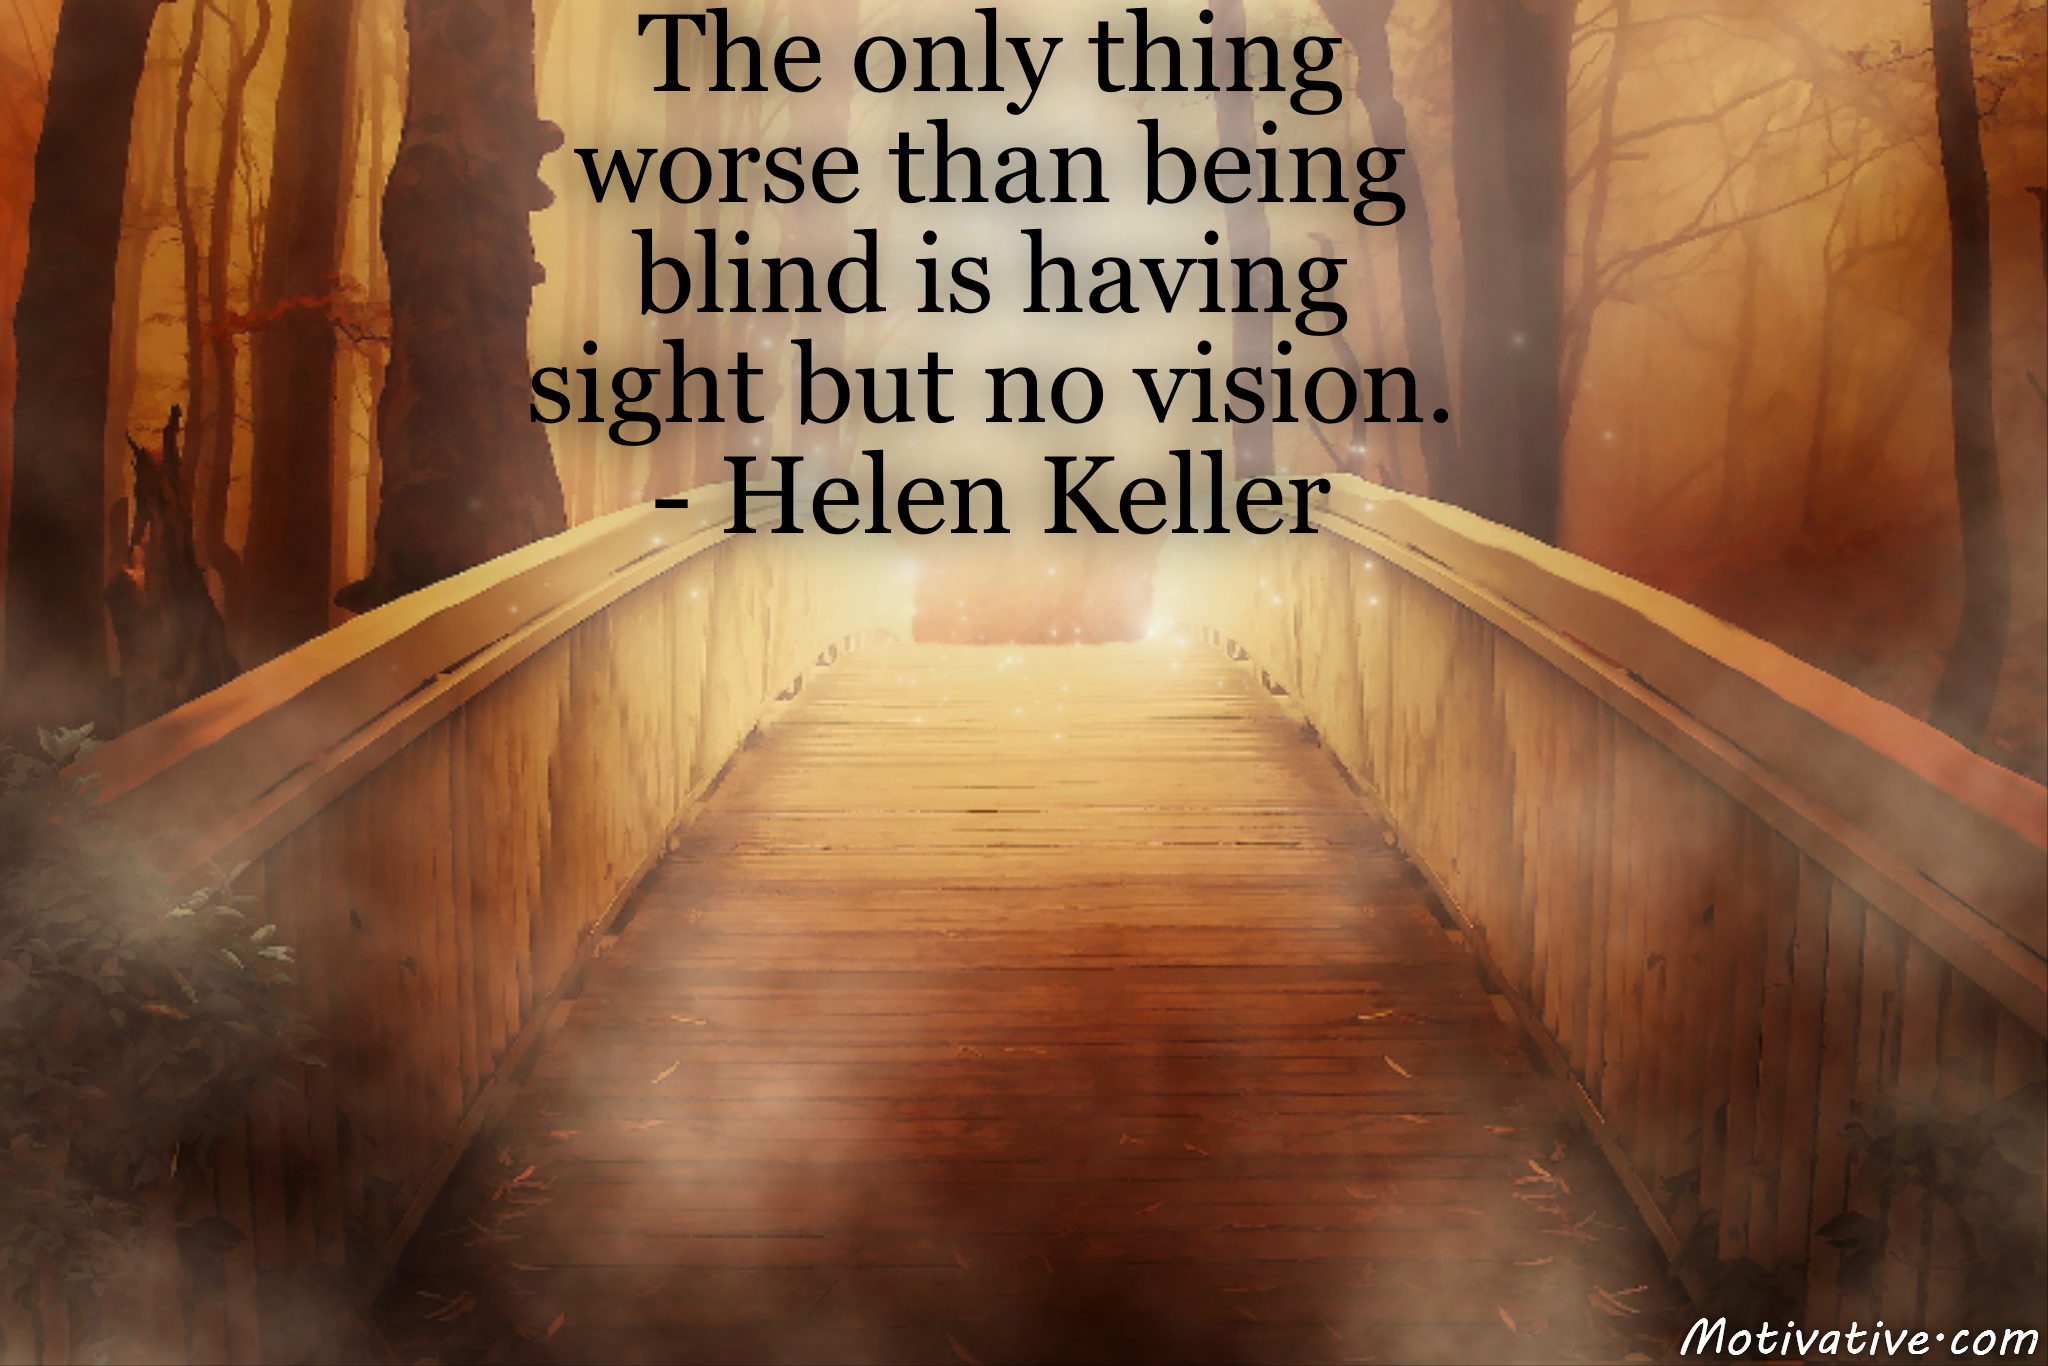 The only thing worse than being blind is having sight but no vision. – Helen Keller